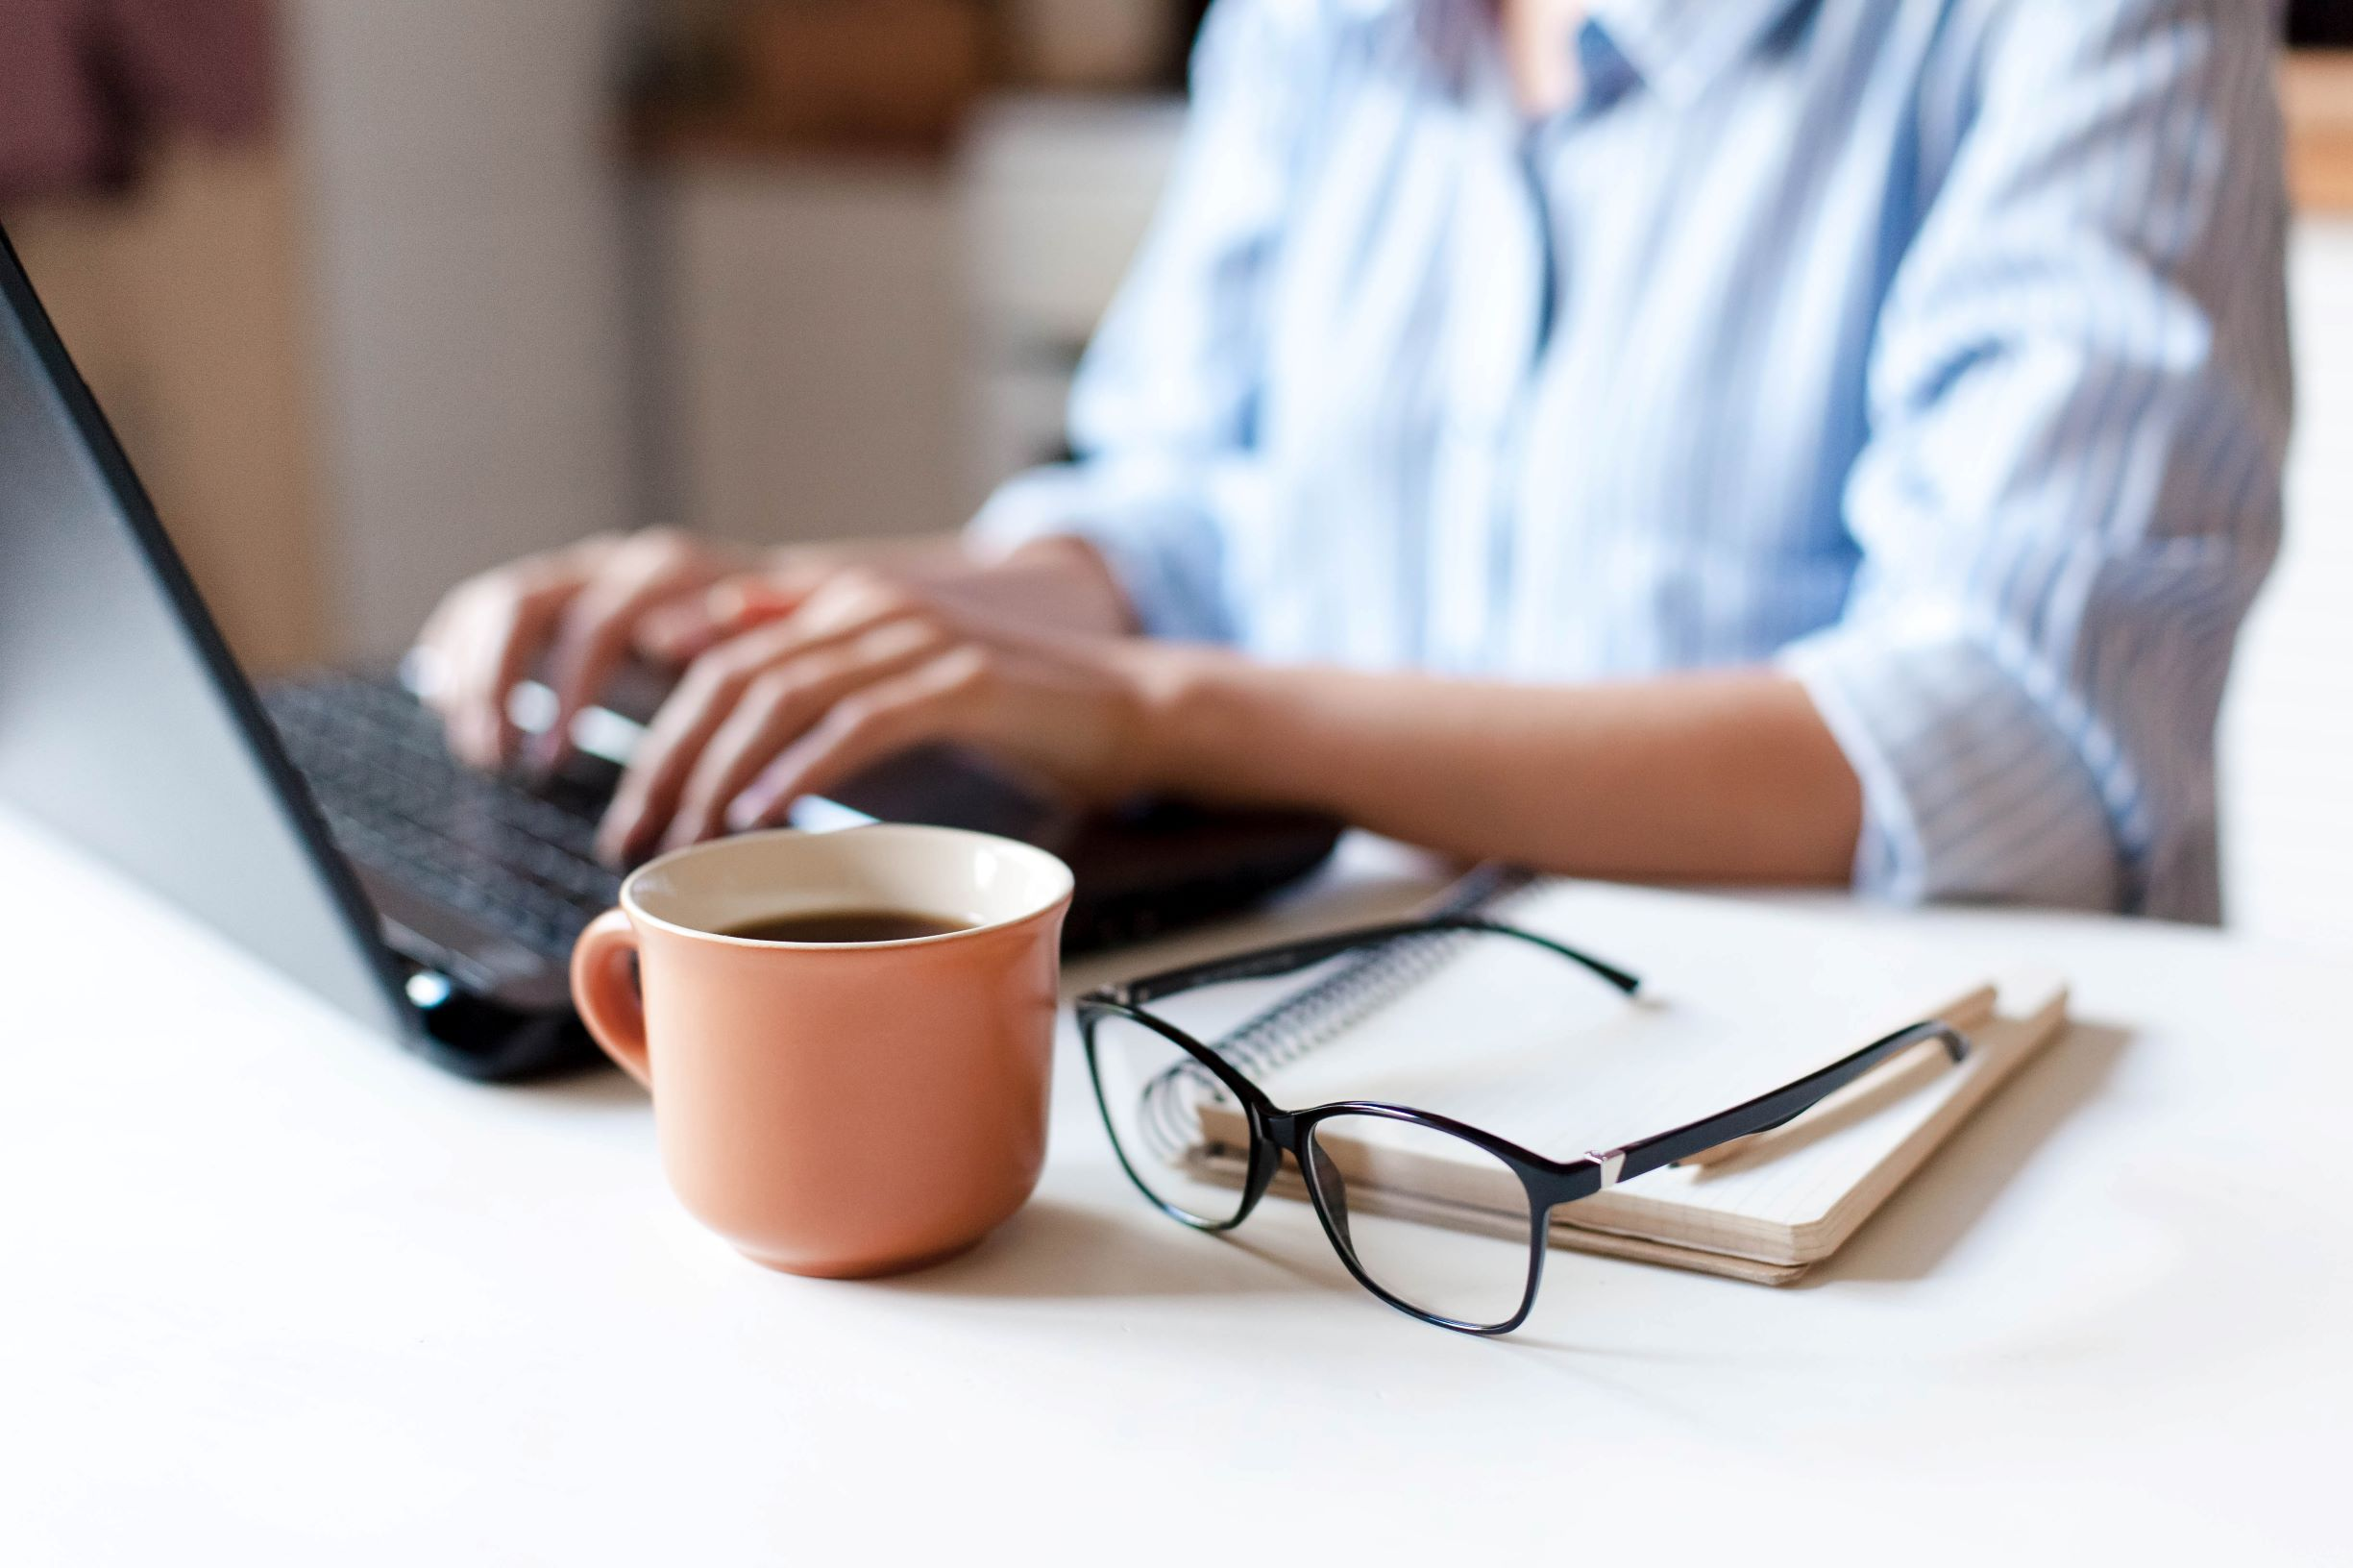 A person typing on a computer at a desk with a cup of coffee, glasses, and notepad nearby.